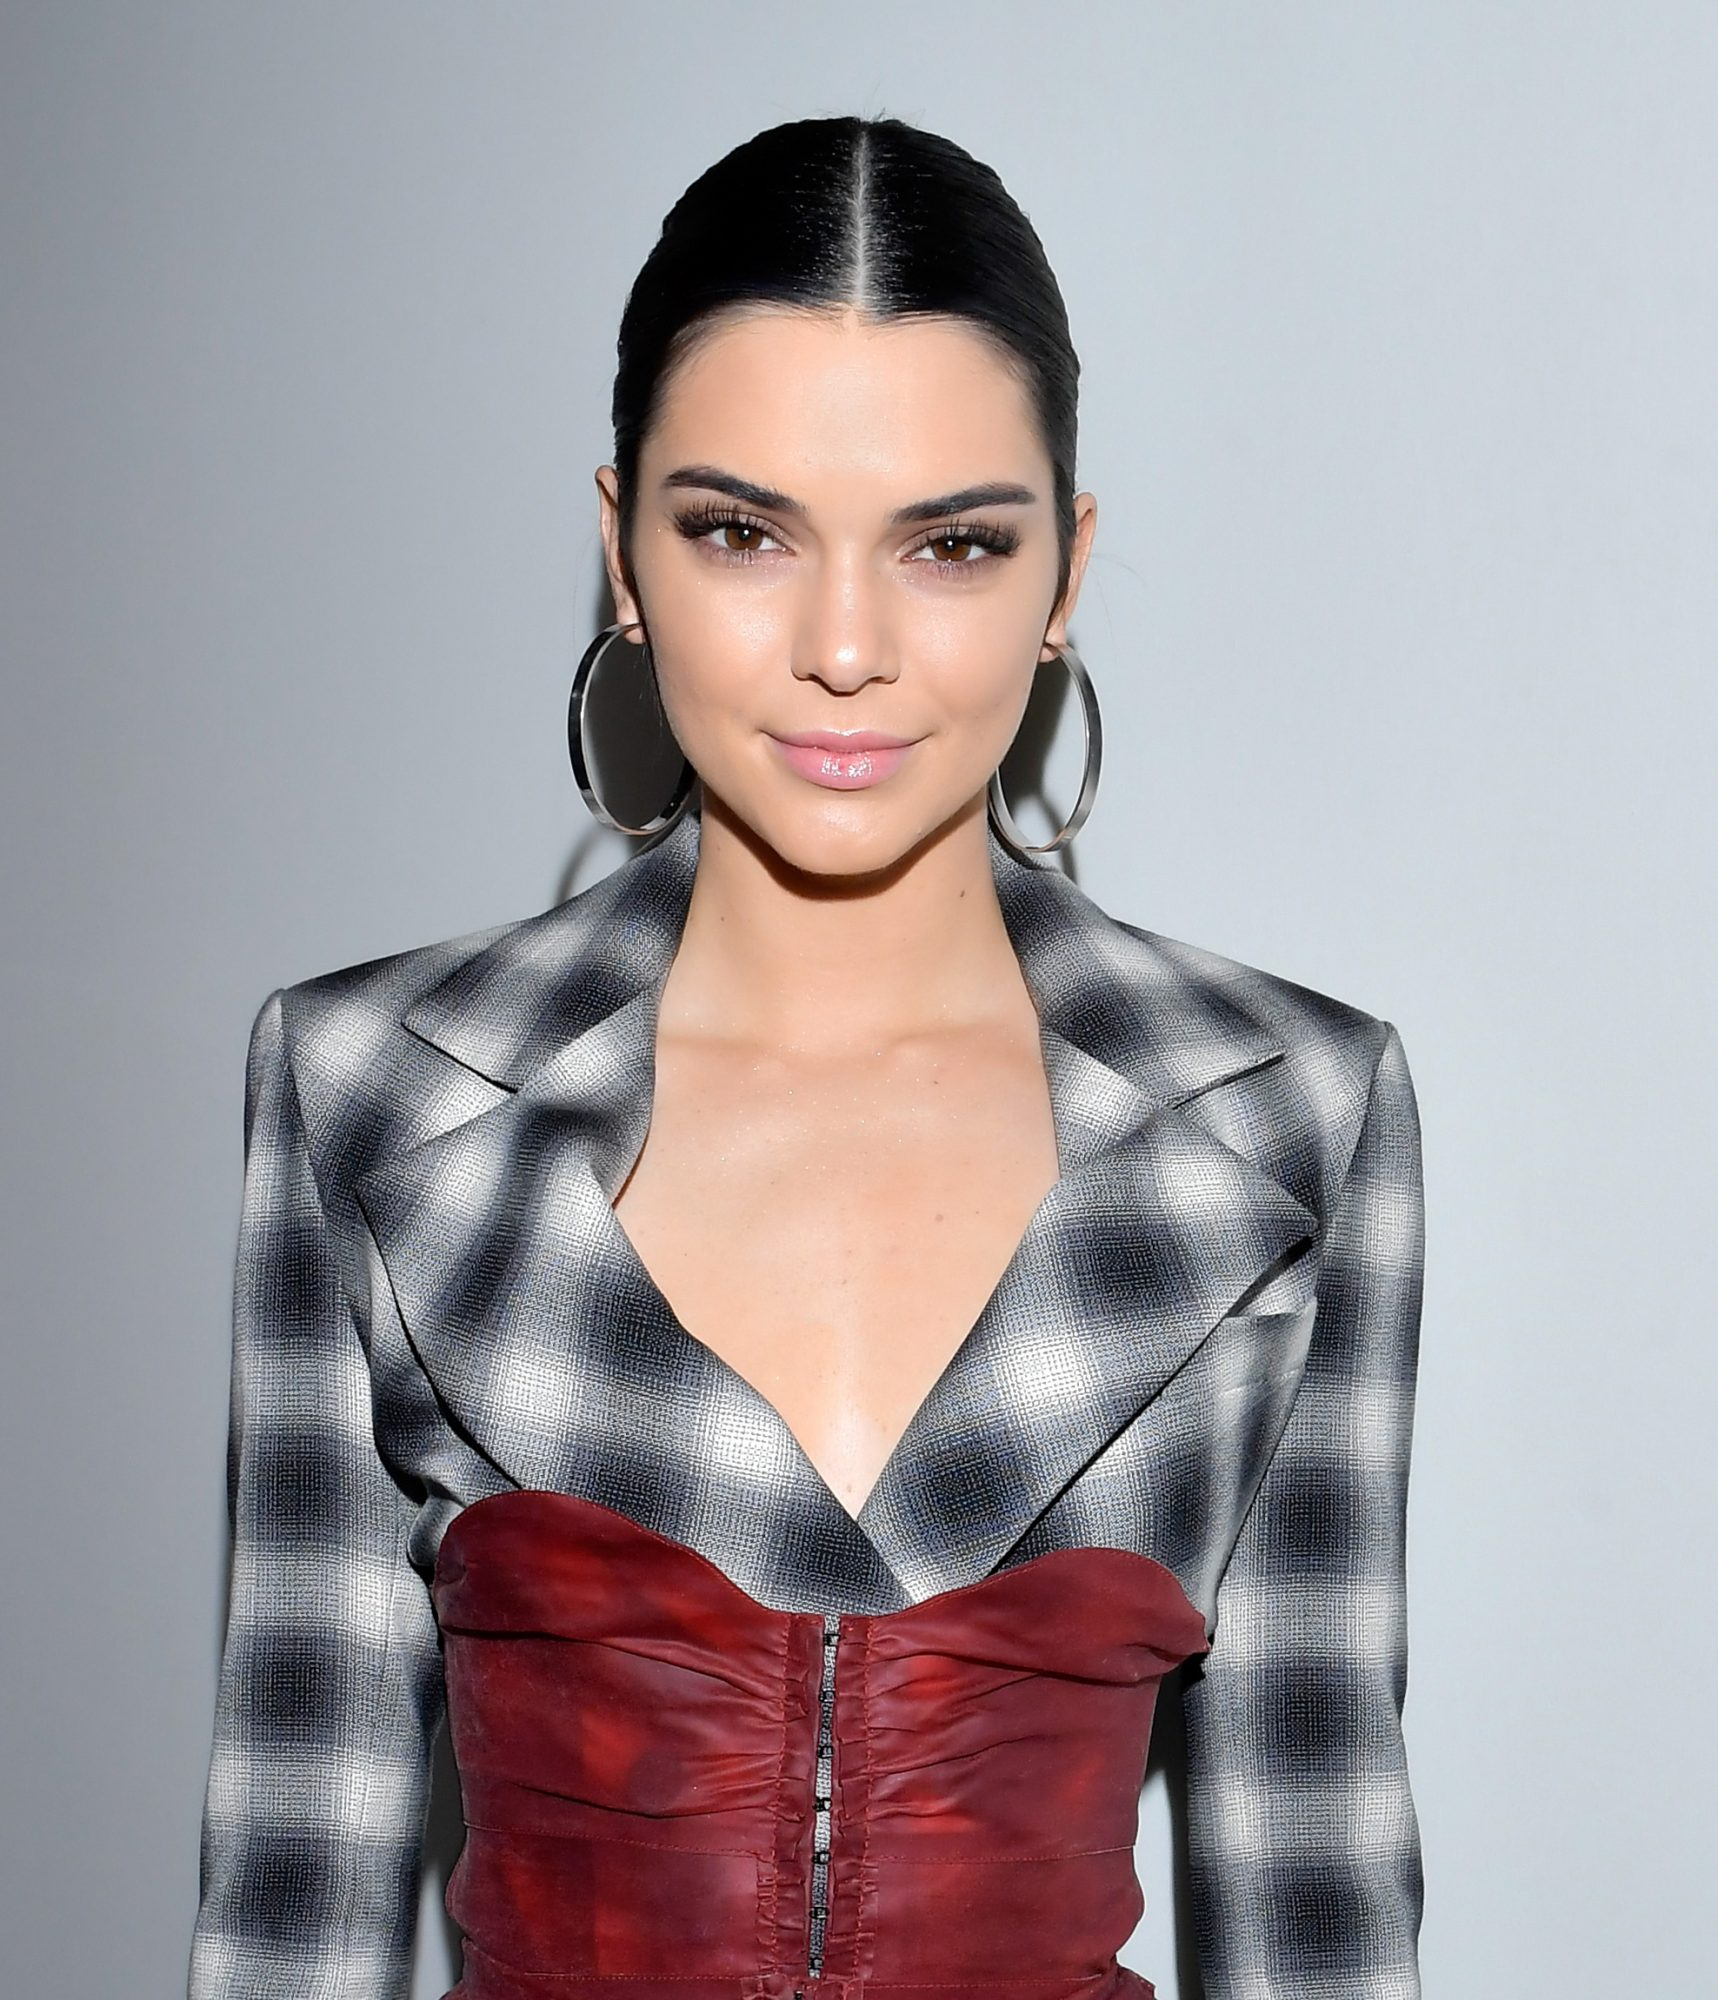 These Are the 5 Trends Kendall Jenner Says She's Wearing This Spring